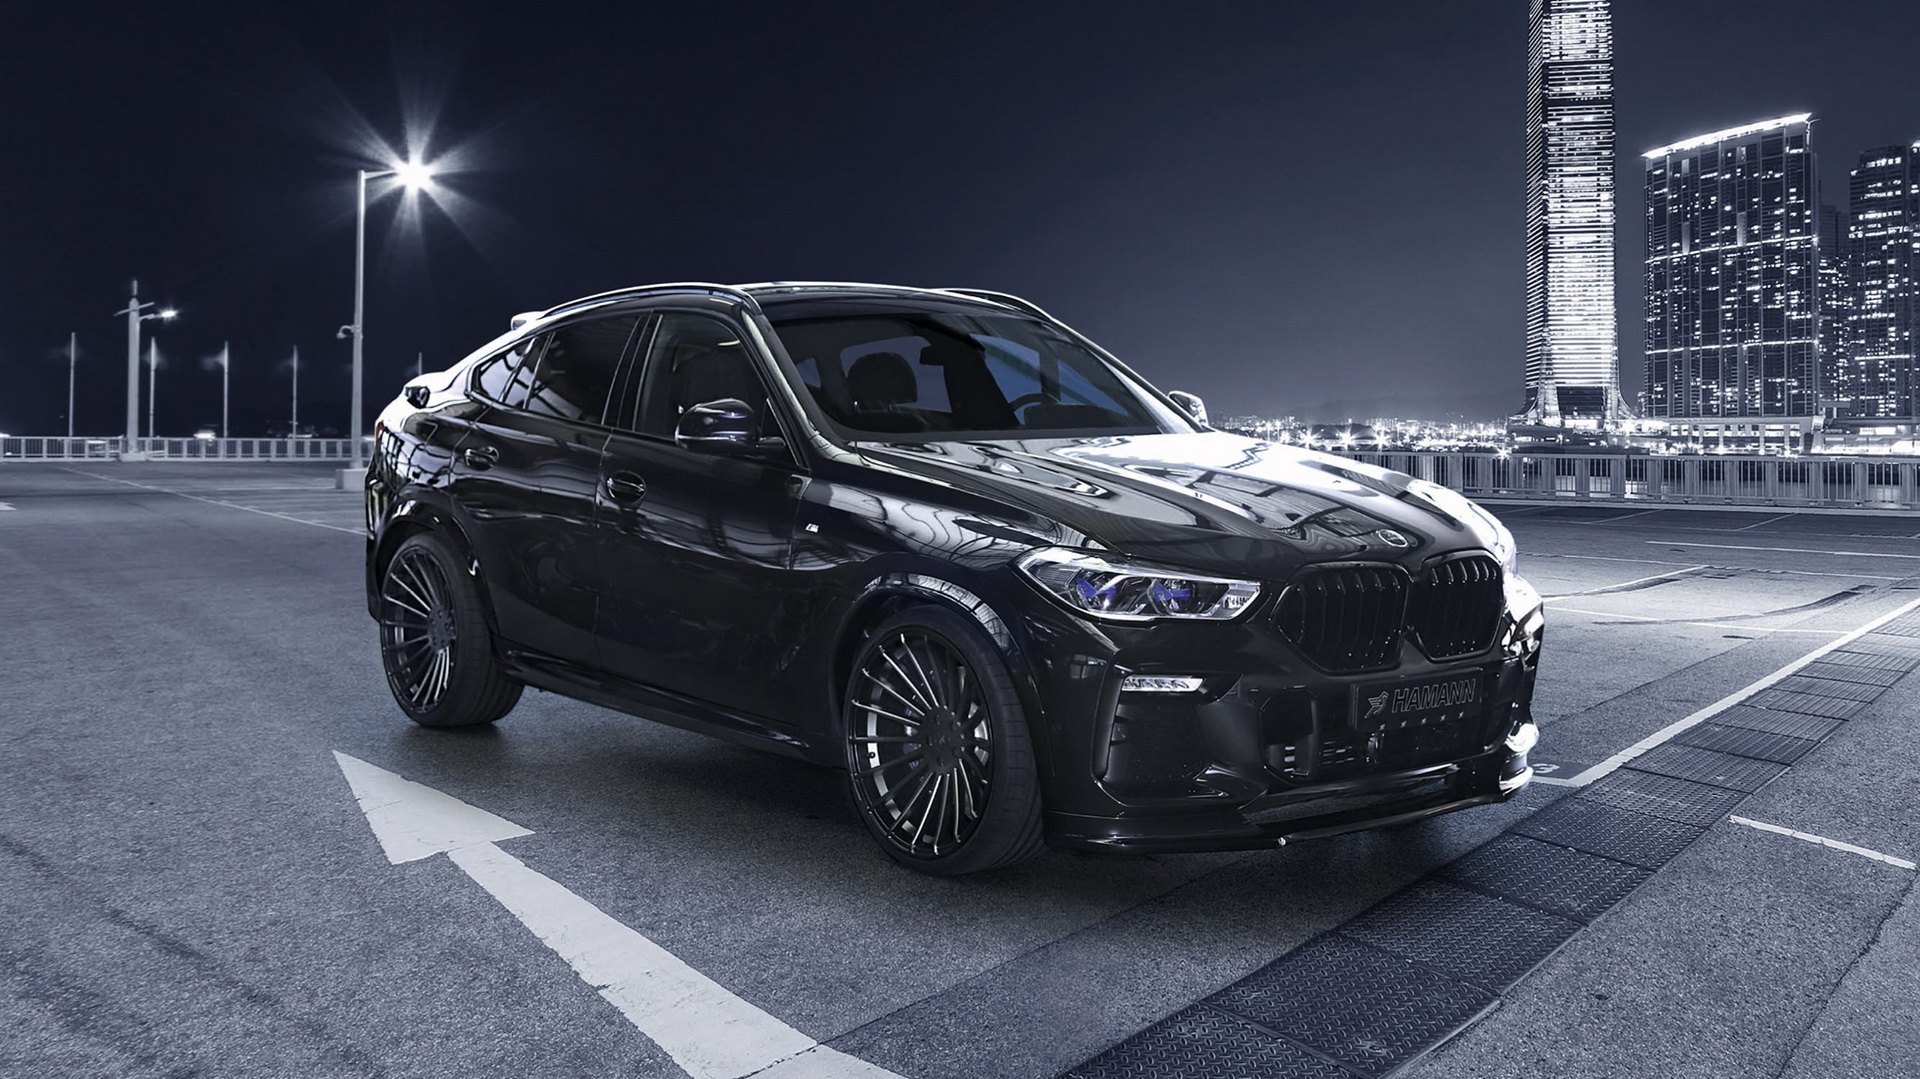 Coupe-shaped SUVs may not be to everyone's liking, but sales figures prove that many find this car type optimal for their needs. It is for these people – more specifically, the BMW X6 owners – that Hamann Motorsport designed its latest styling package.